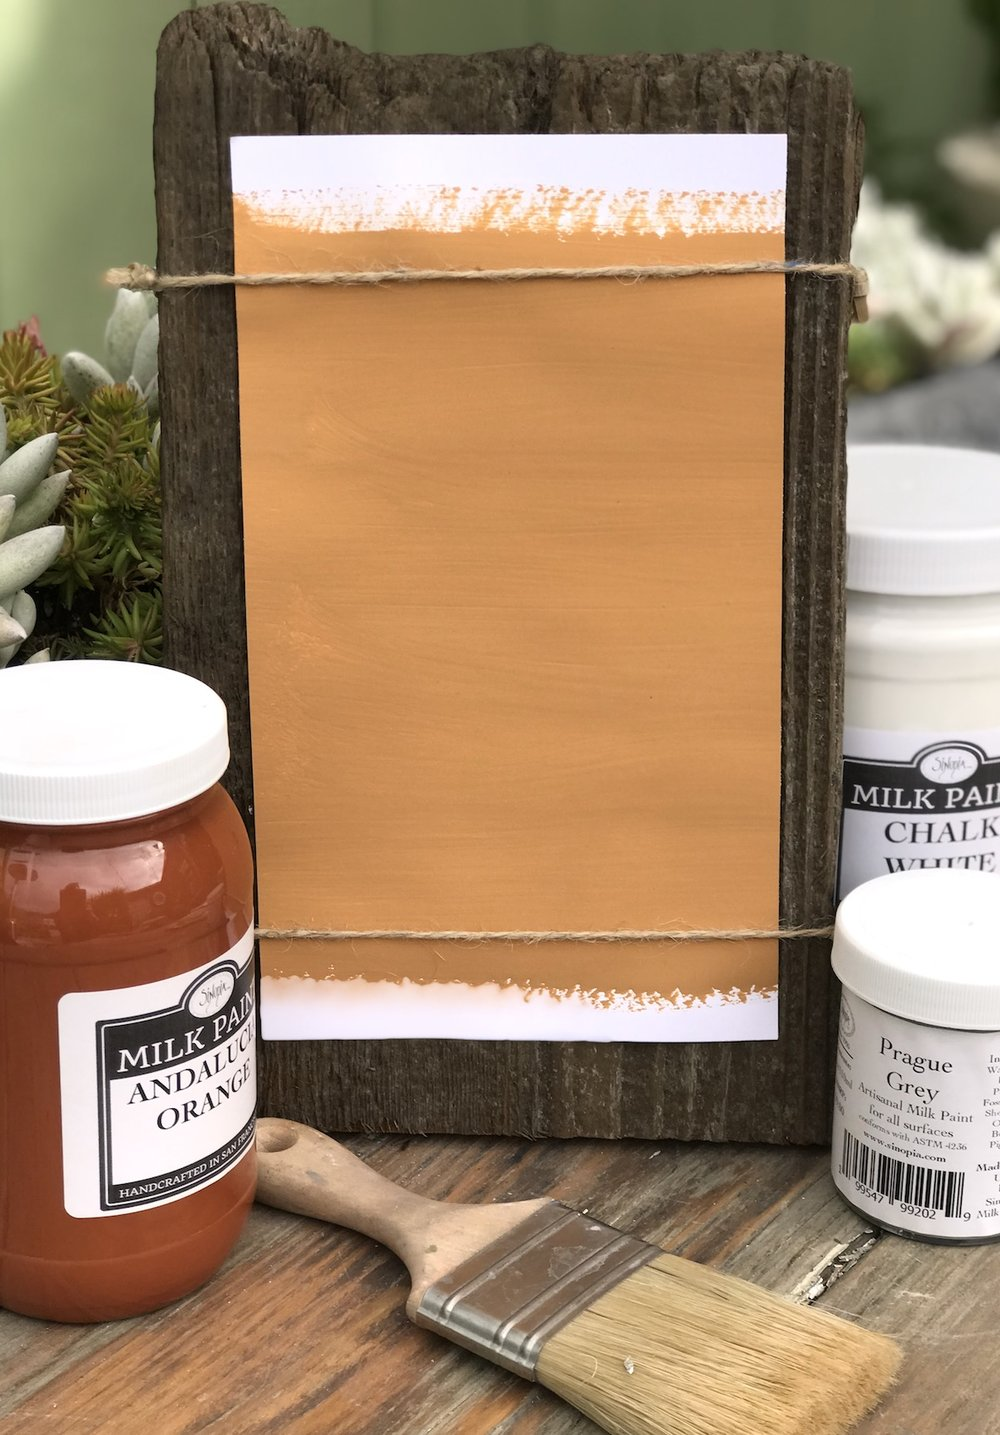 Sienna Orange Milk Paint